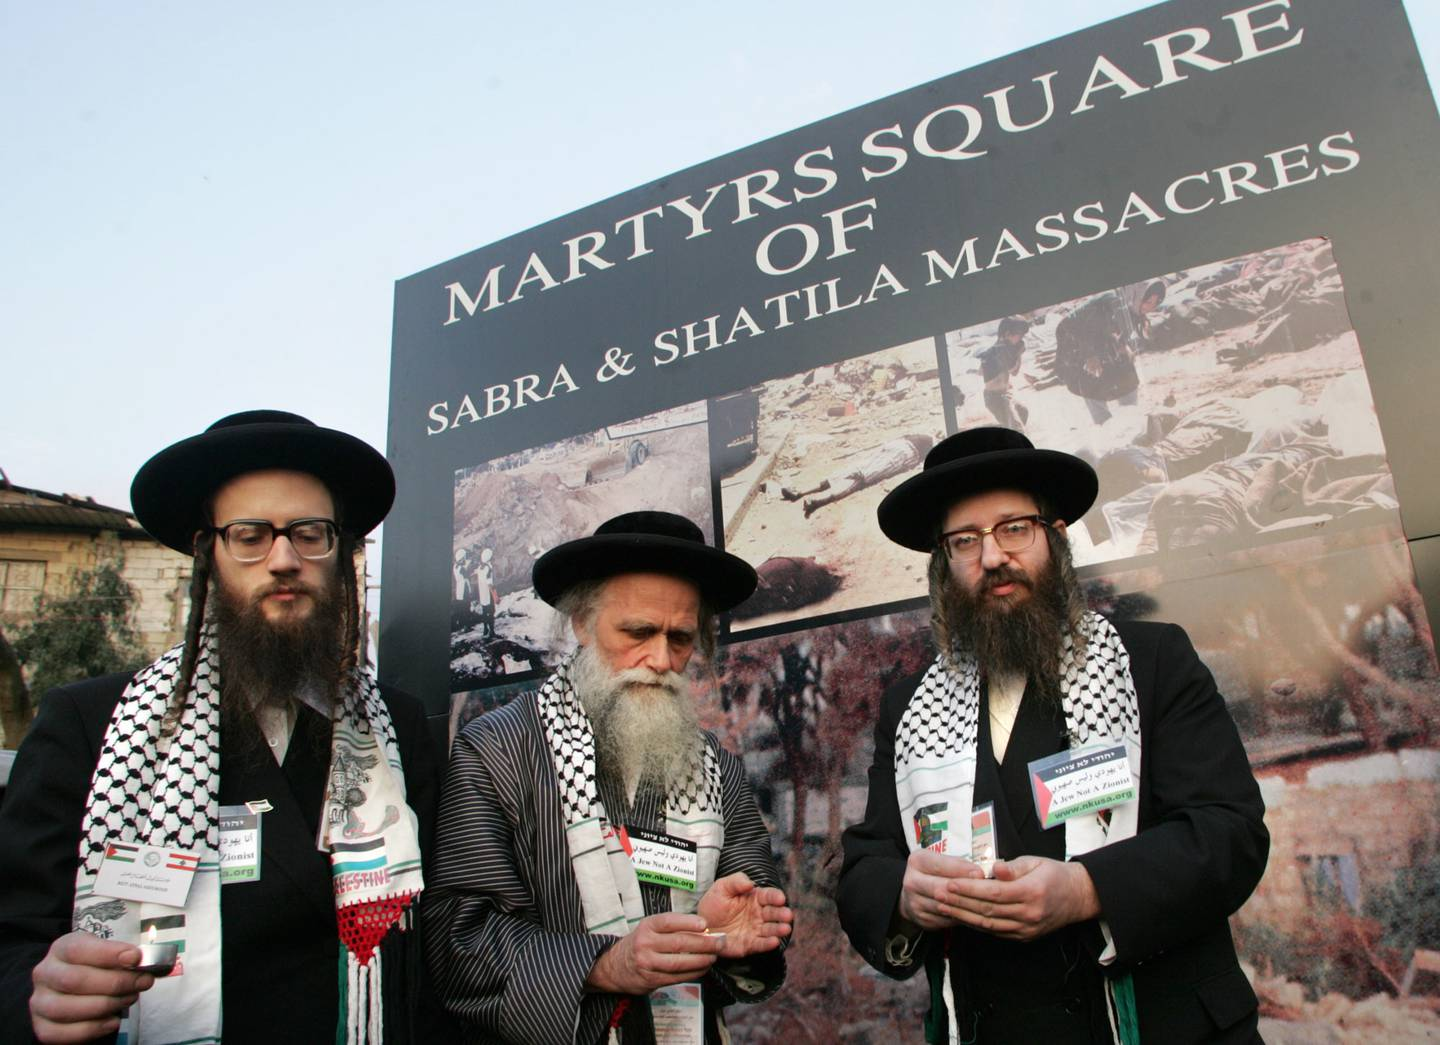 Rabbis from left, David Shlomo Feldman, Moshe Dov Beck and Yisroel Dovid Wiess, light candles at the Martyrs square of Sabra and Shatila Massacres in the Palestinian refugee camp in Beirut, Lebanon, Thursday Feb. 24, 2005. Four Jewish Rabbis are taking part in a three-day conference titled The Palestinian People's Right of Return to their Homeland. The conference is organized by The International Union of Parliamentarians for the Defense of the Palestinian Cause that includes members of parliament from around the world. (AP Photo/Adnan Hajj Ali)